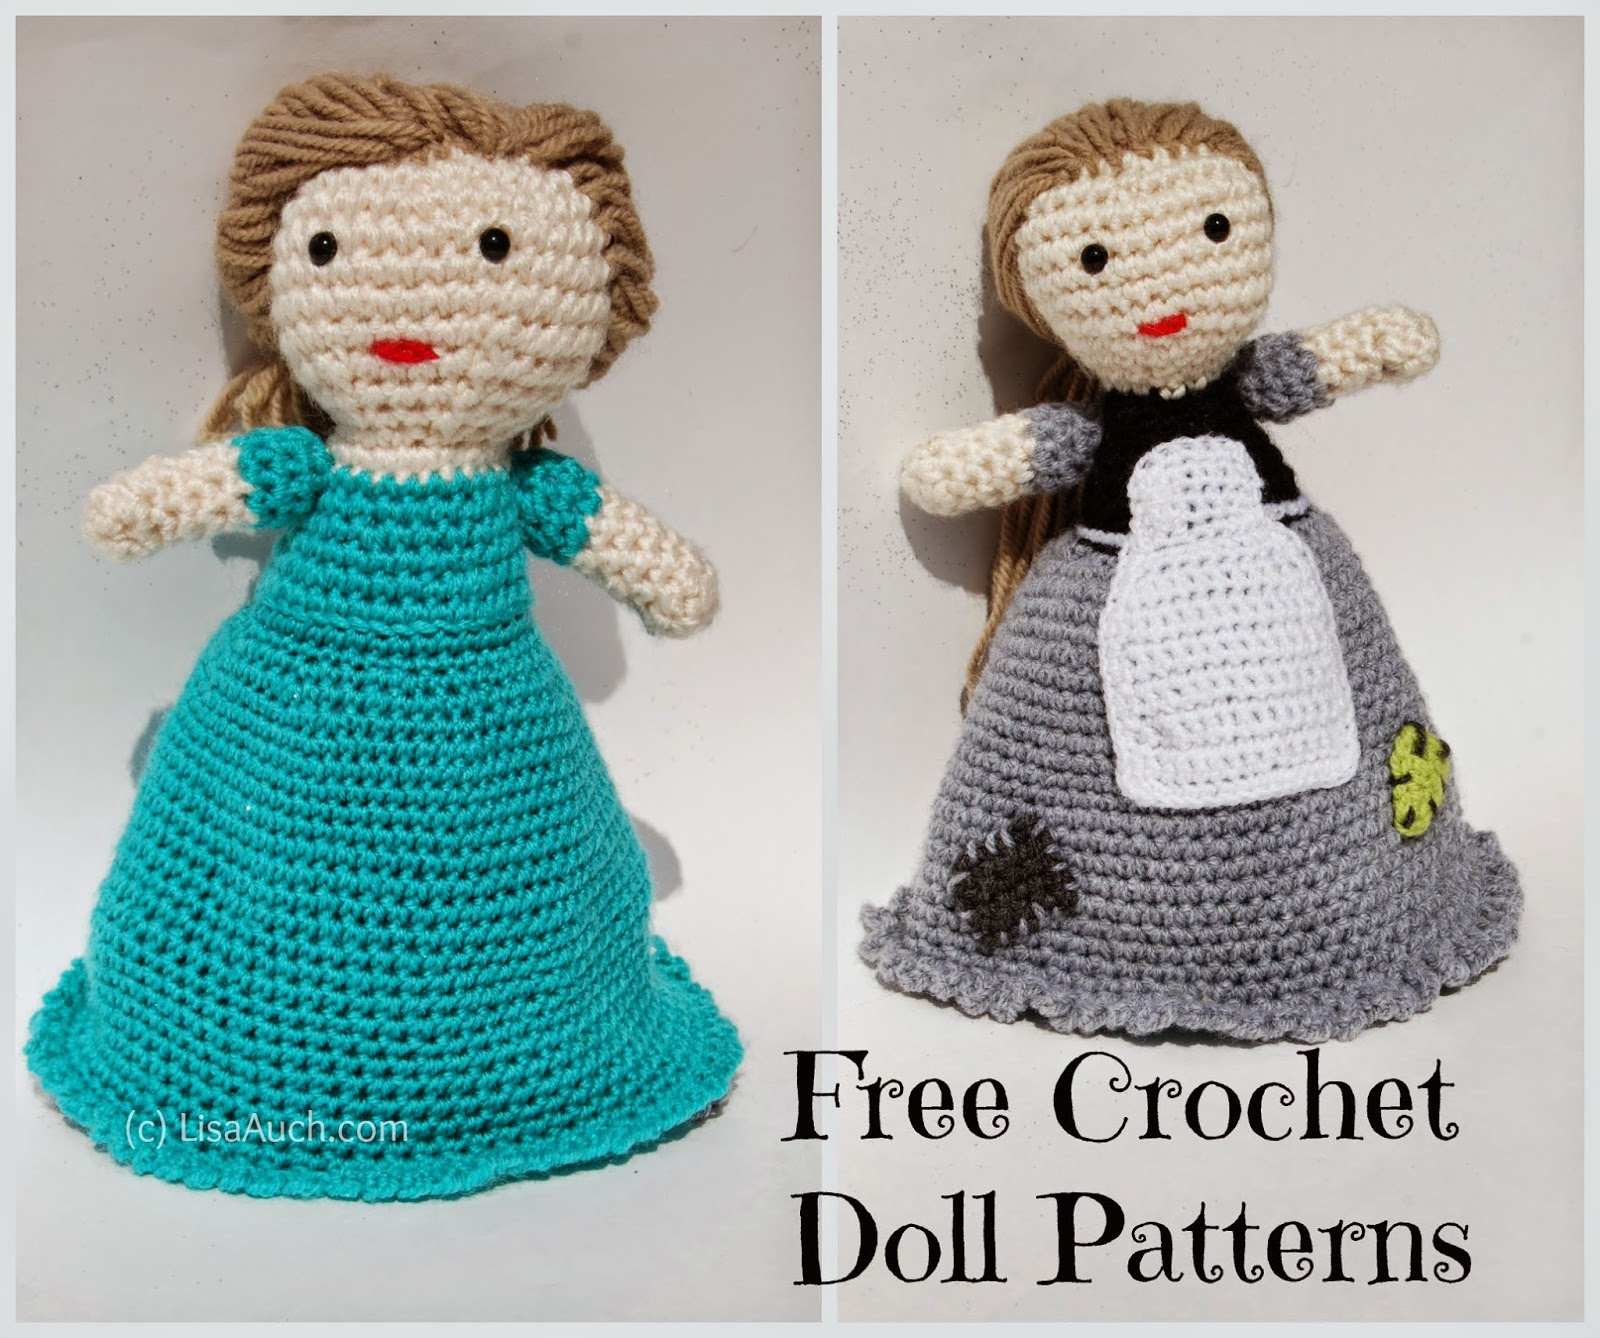 37+ Free Amigurumi Crochet Doll Pattern and Design ideas - Daily ... | 1338x1600